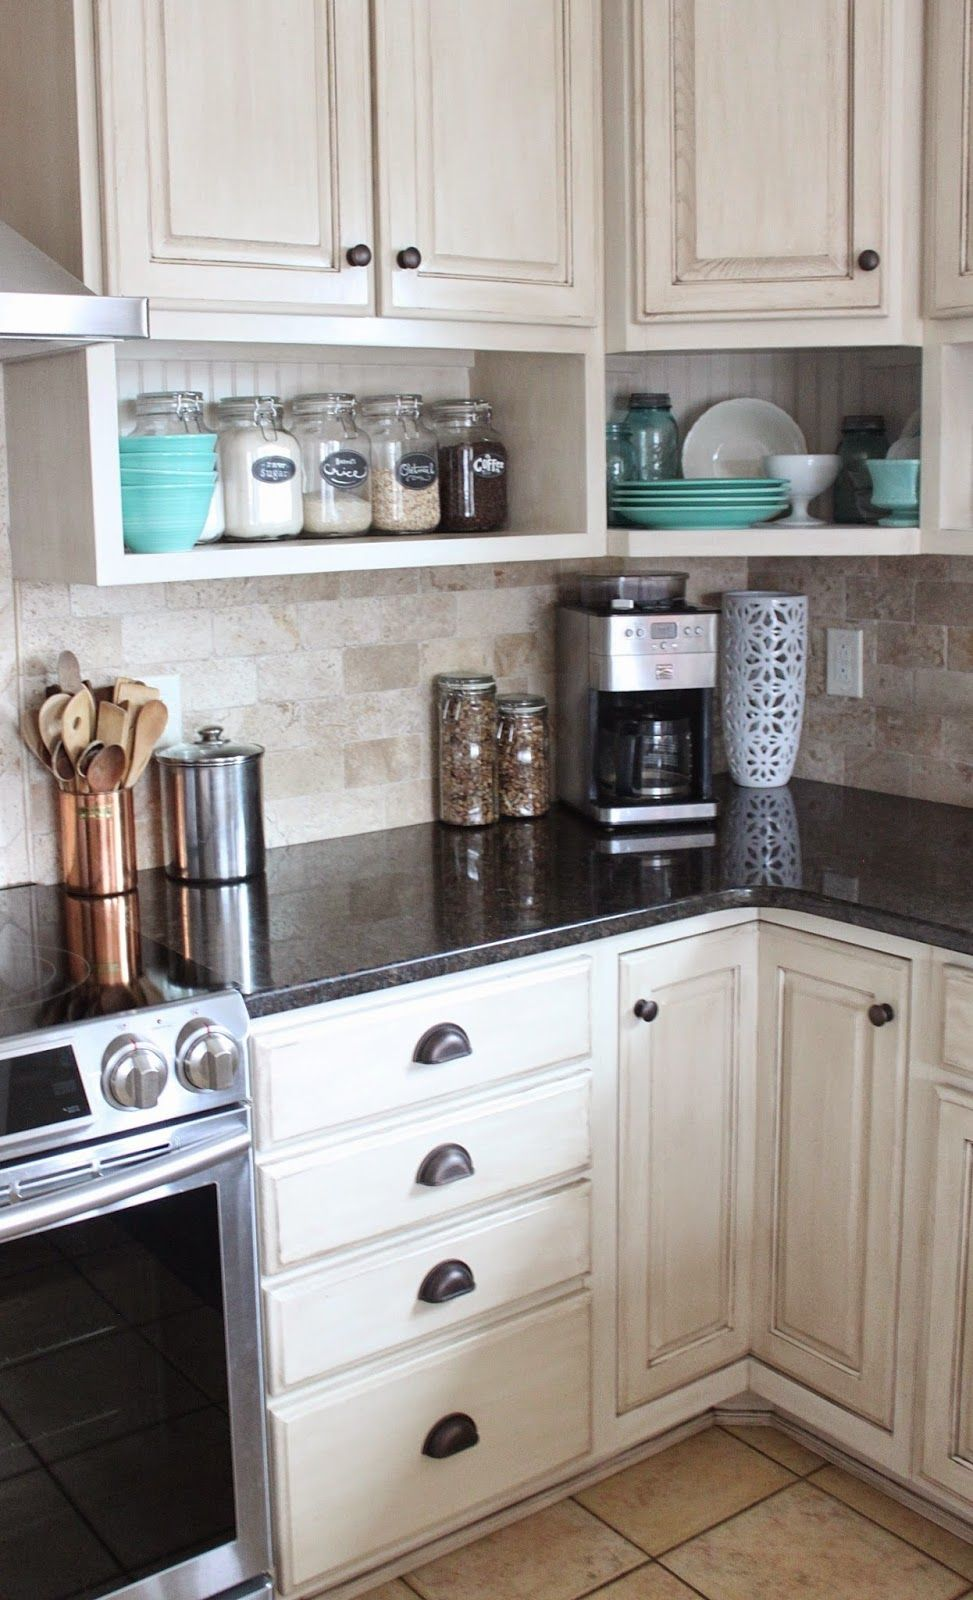 Raised Wall Cabinets With Shelves Built Underneath Namely